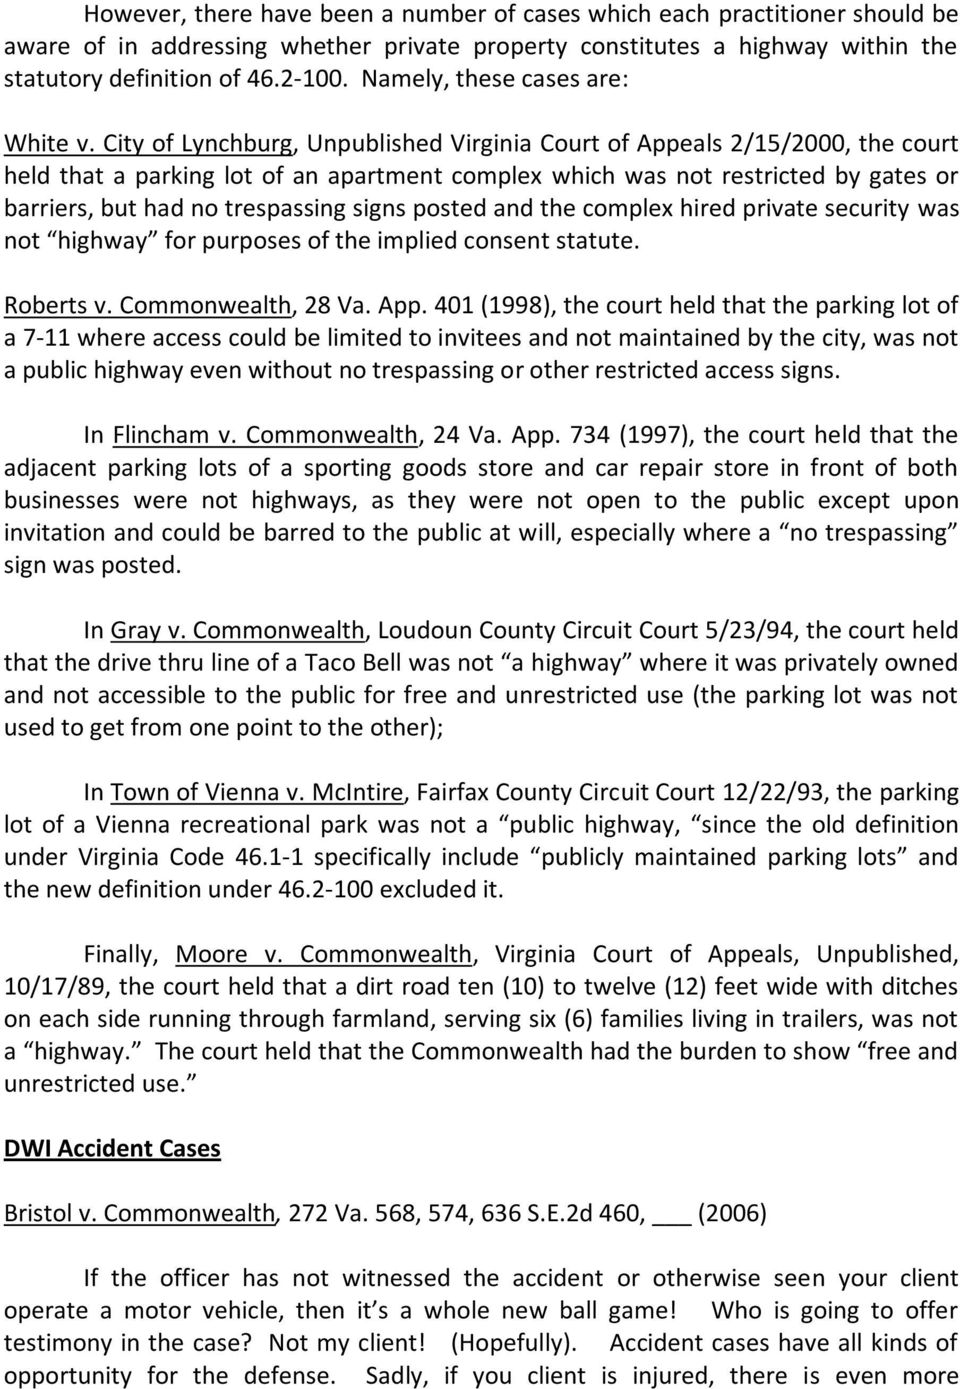 City of Lynchburg, Unpublished Virginia Court of Appeals 2/15/2000, the court held that a parking lot of an apartment complex which was not restricted by gates or barriers, but had no trespassing